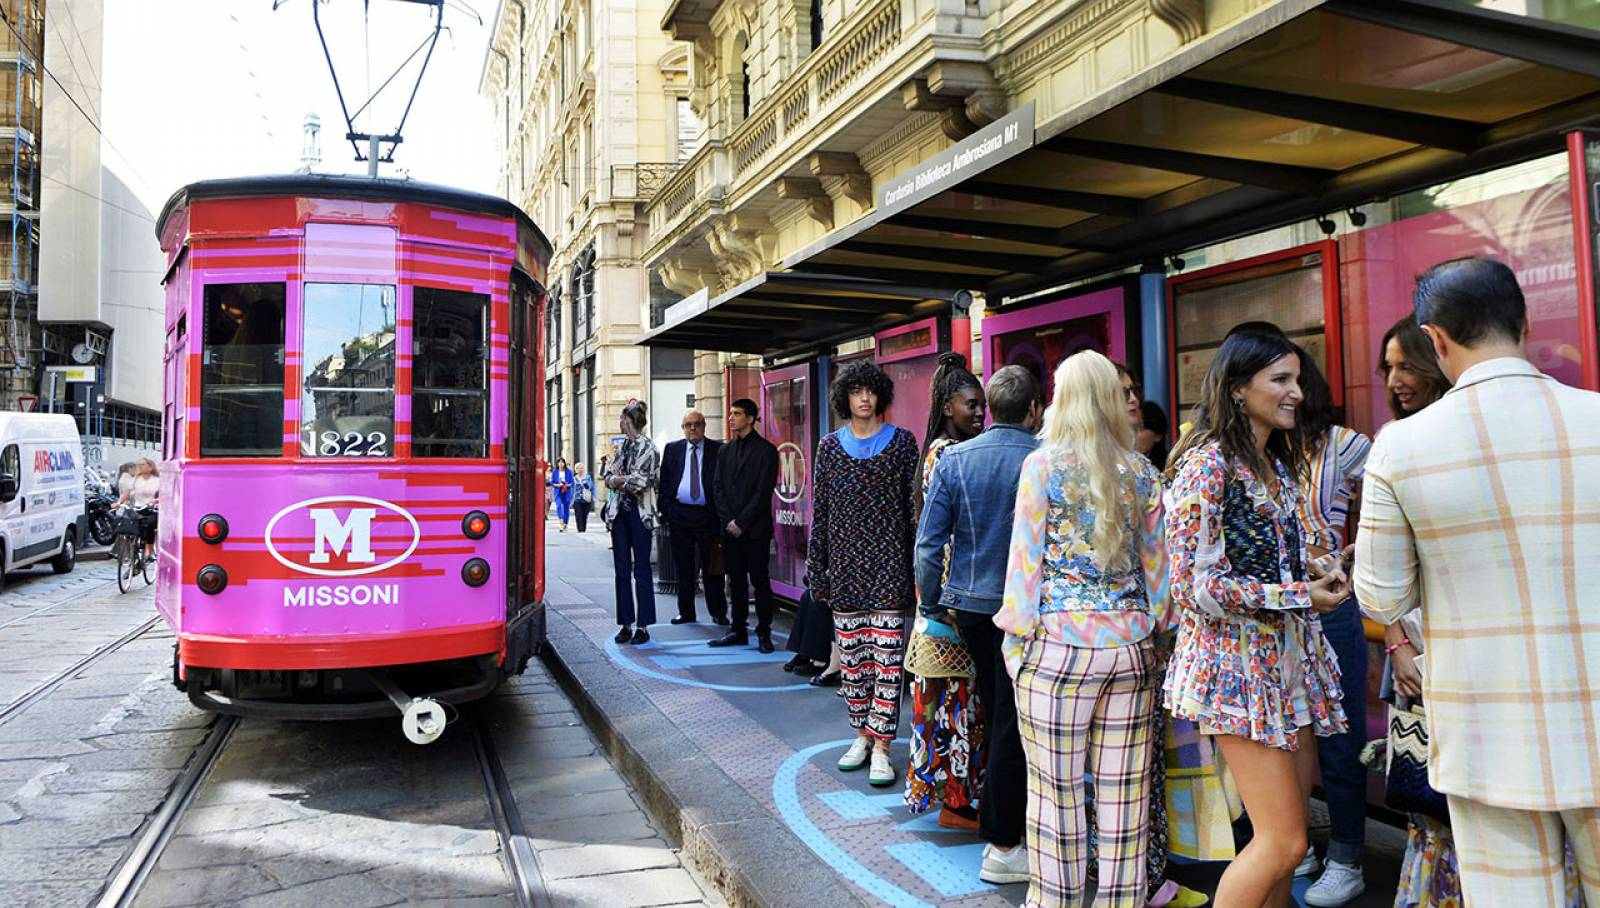 OOH campaign in Milan IGPDecaux tram for M Missoni